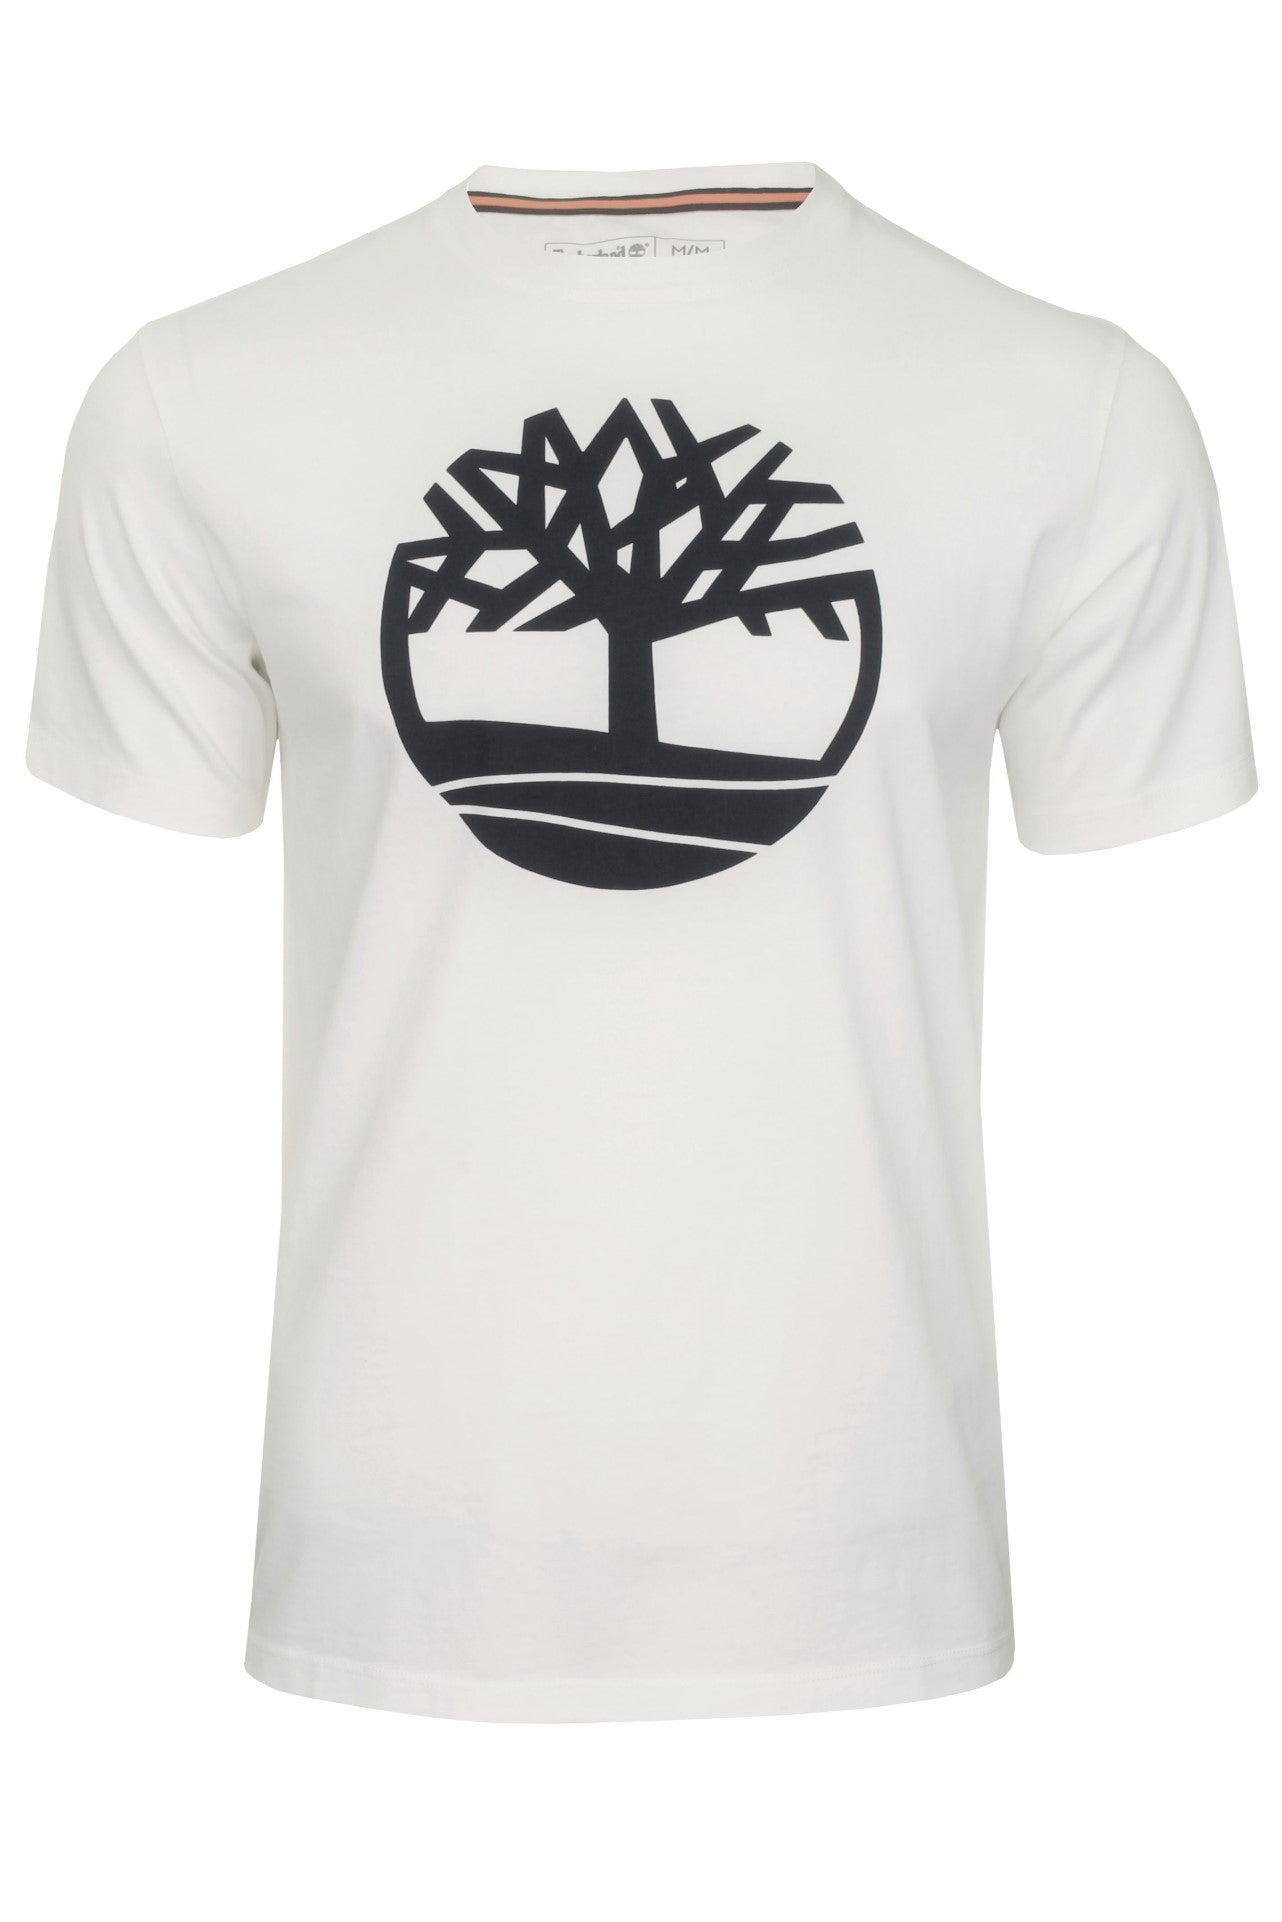 Timberland 'Kennebec River Tree Logo' T-Shirt - Short Sleeved_01_Tb0A2C2R_White